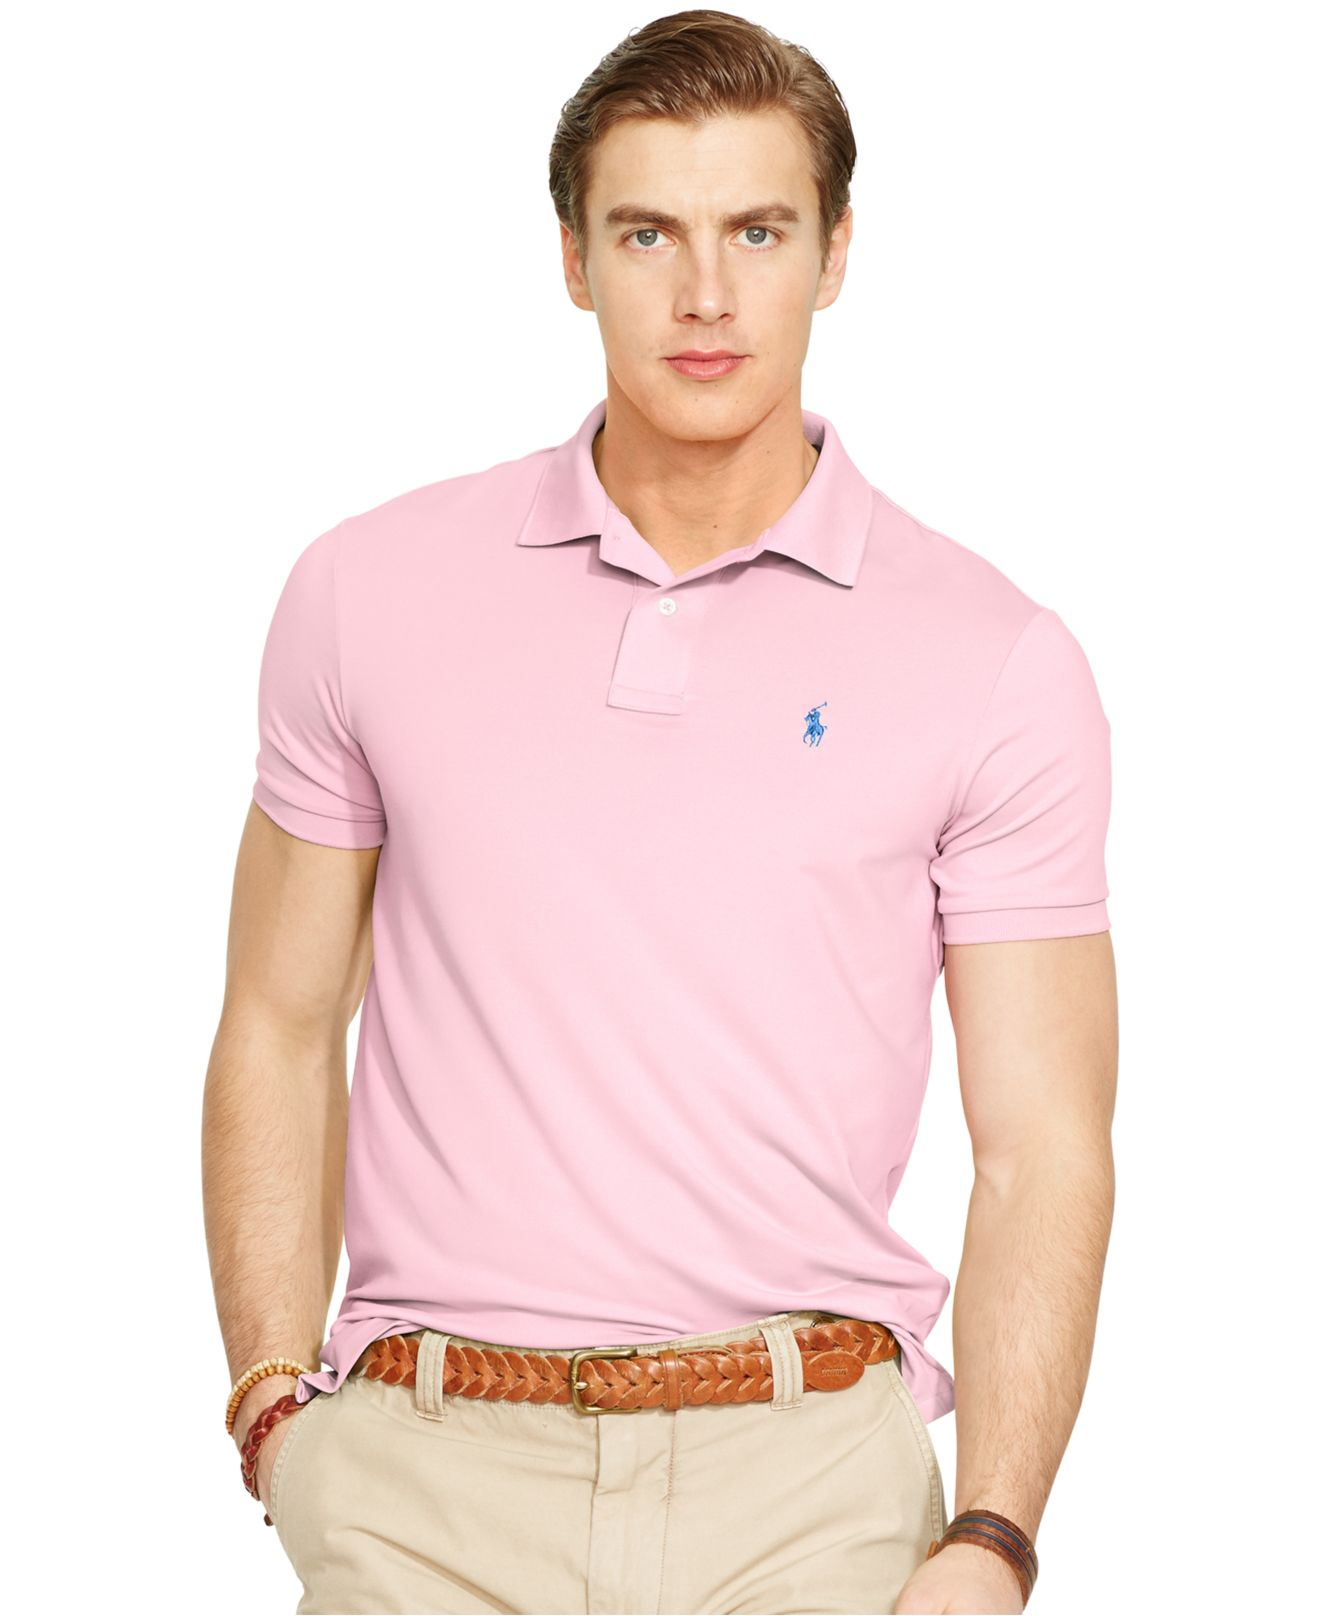 39caeae61129c ... best lyst polo ralph lauren performance jersey polo shirt in pink for  men d7b54 ee1b9